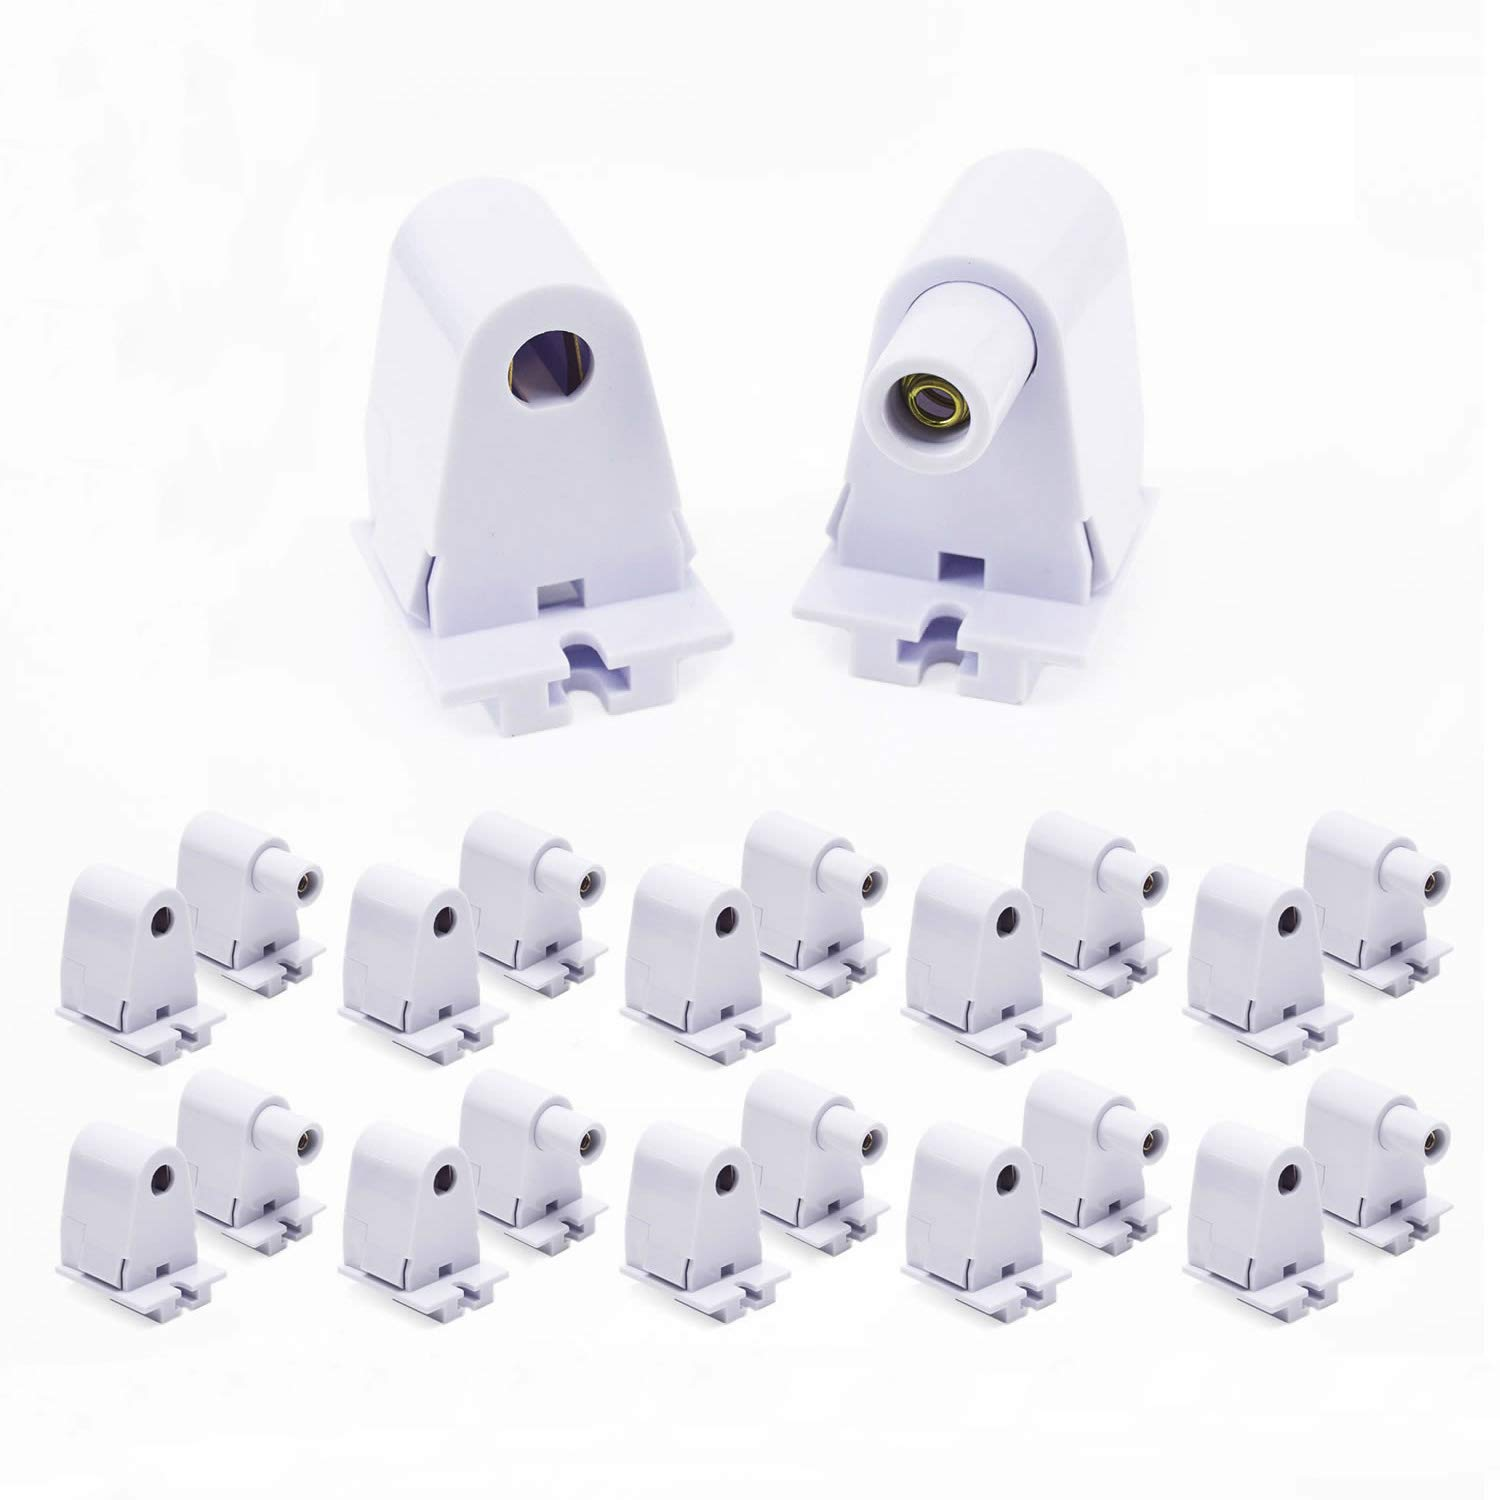 JESLED 10 Pairs T8/T10/T12 Single Pin FA8 Tombstone Base Holder Socket for 8ft LED Fluorescent Tube Light Bulbs Fixtures Flameresistant Plunger Lampholder UL Listed